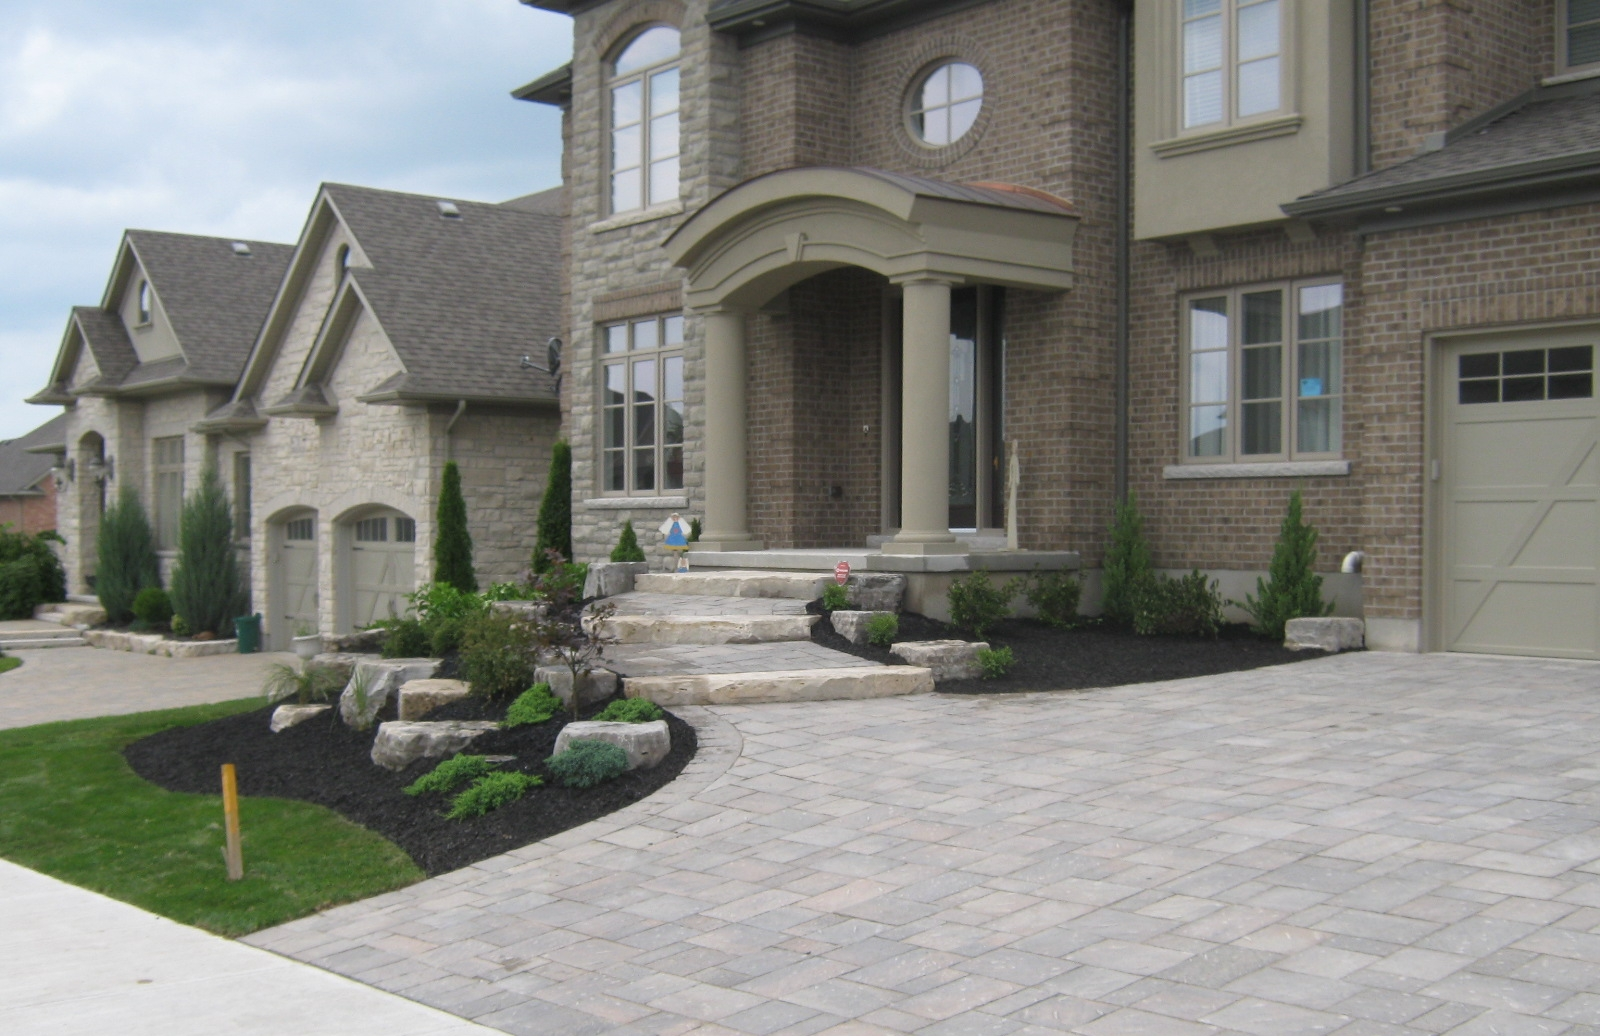 Front entrance and driveway.